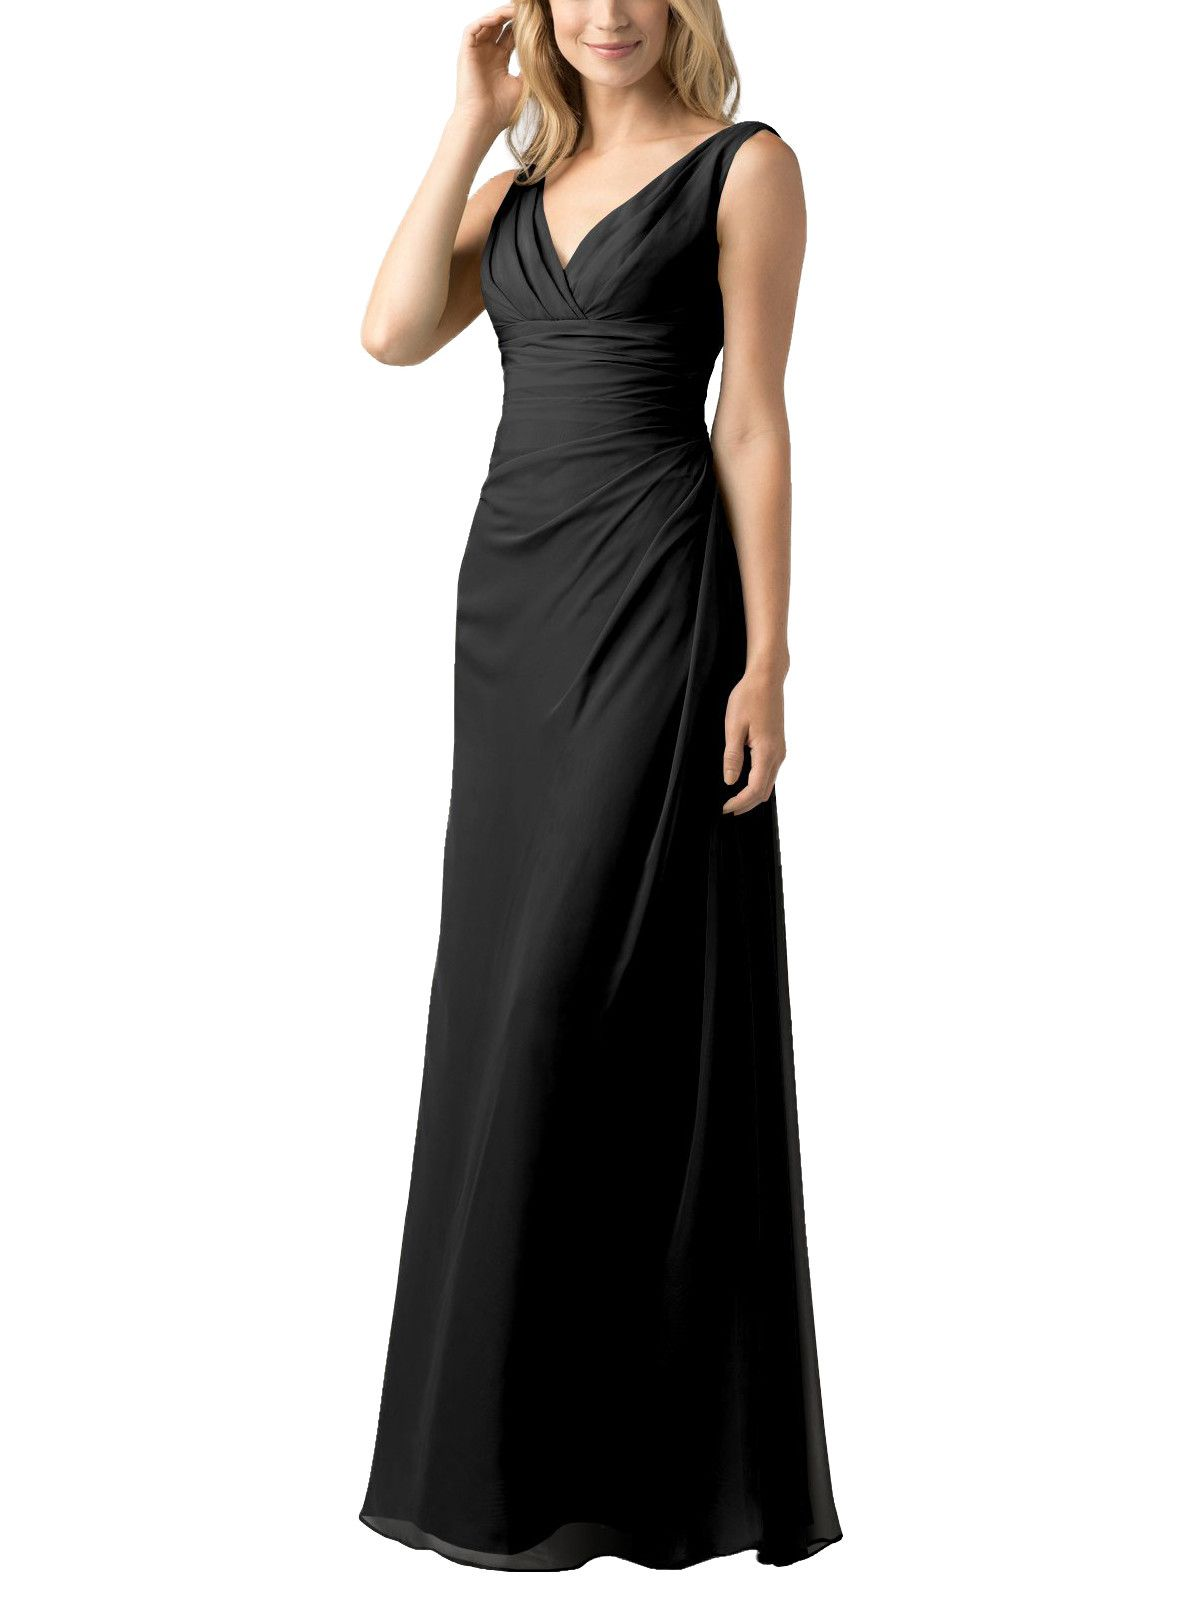 Wtoo by watters bridesmaids dress style 809 alexandras bridesmaid shop our collection of wtoo bridesmaid dresses on brideside ombrellifo Gallery